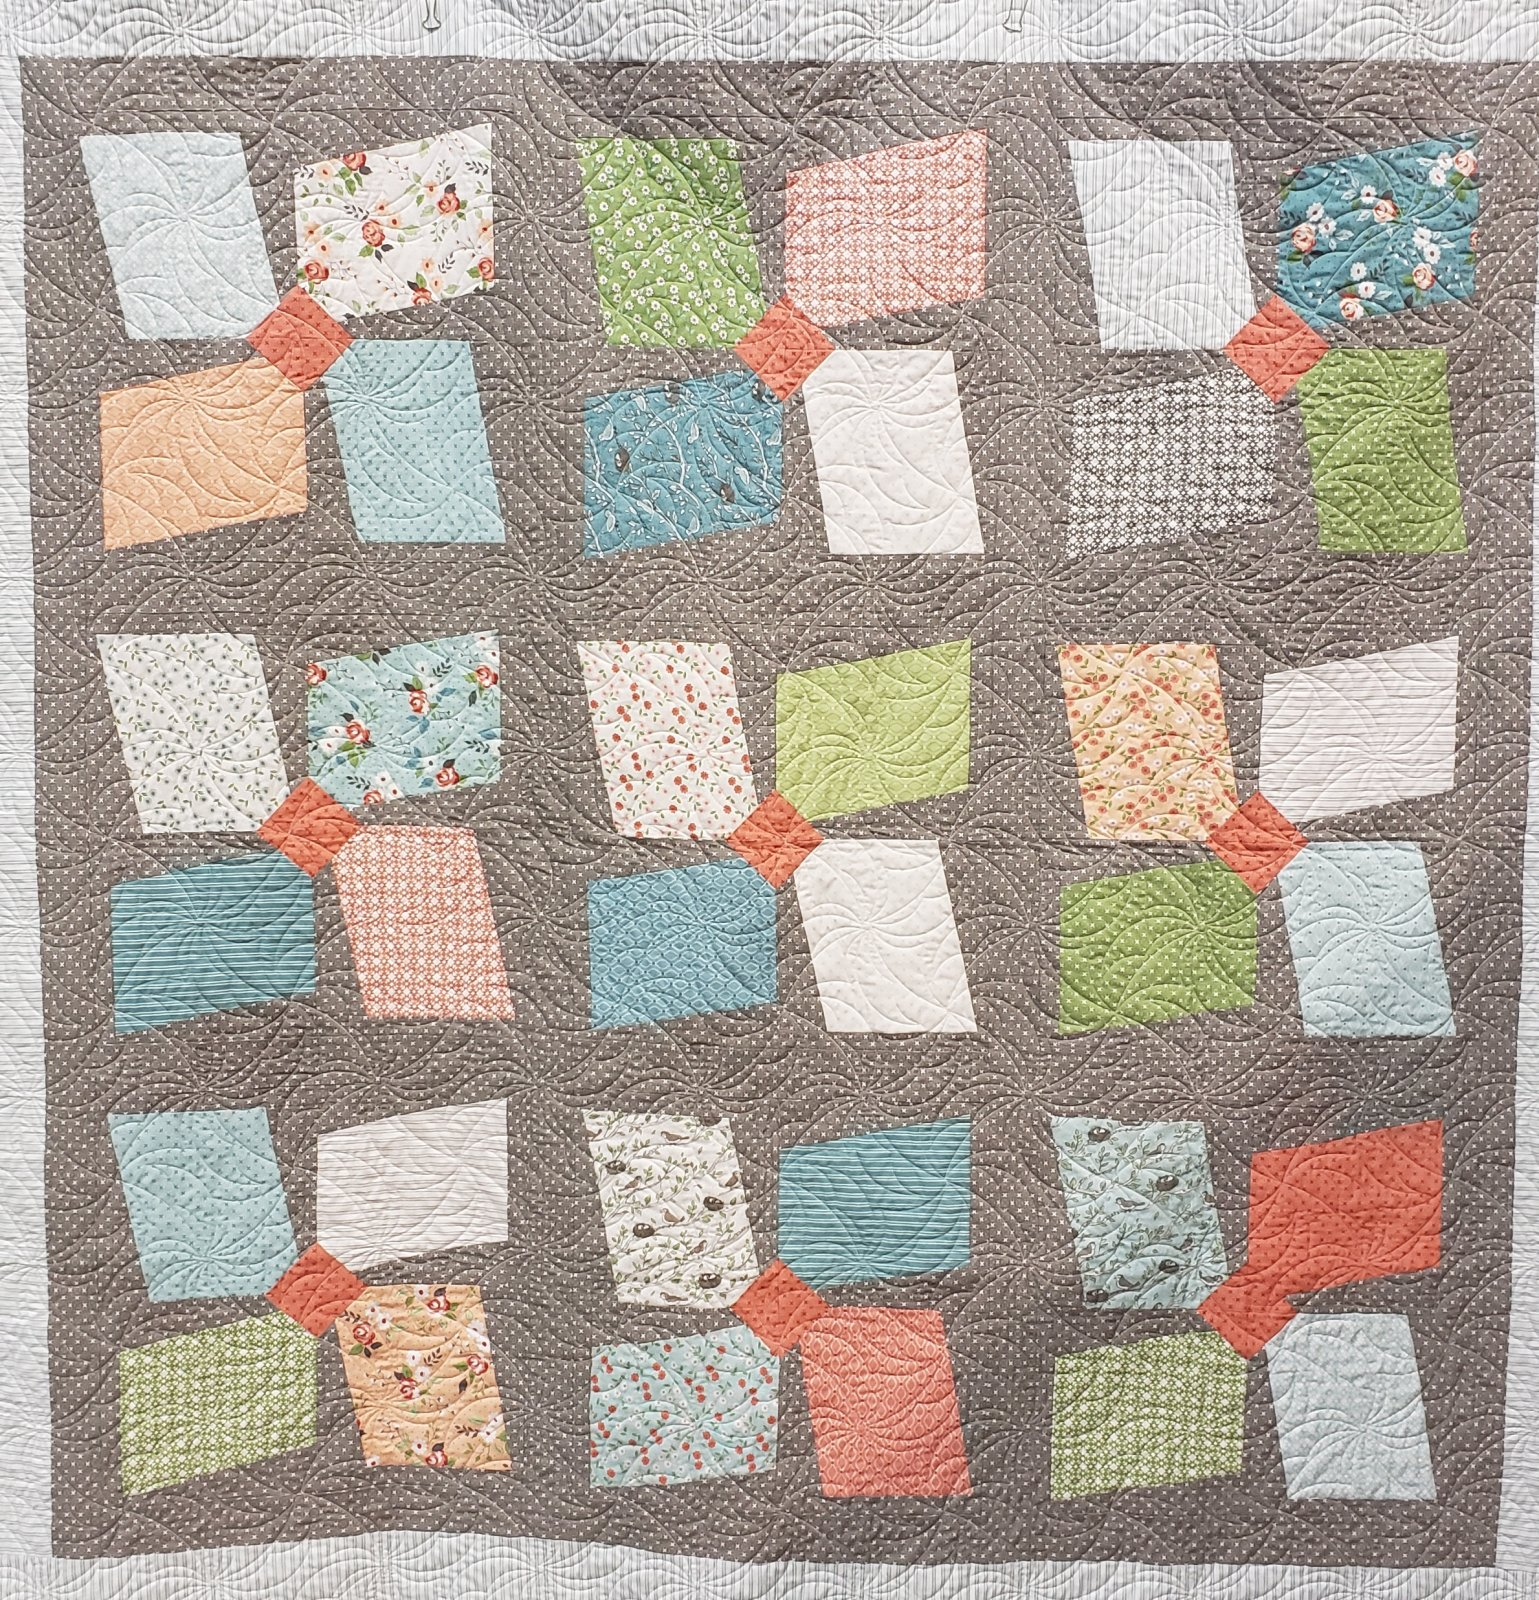 2019 Quilt Show Quilts Group 2 of 2 - Public Pictures Only